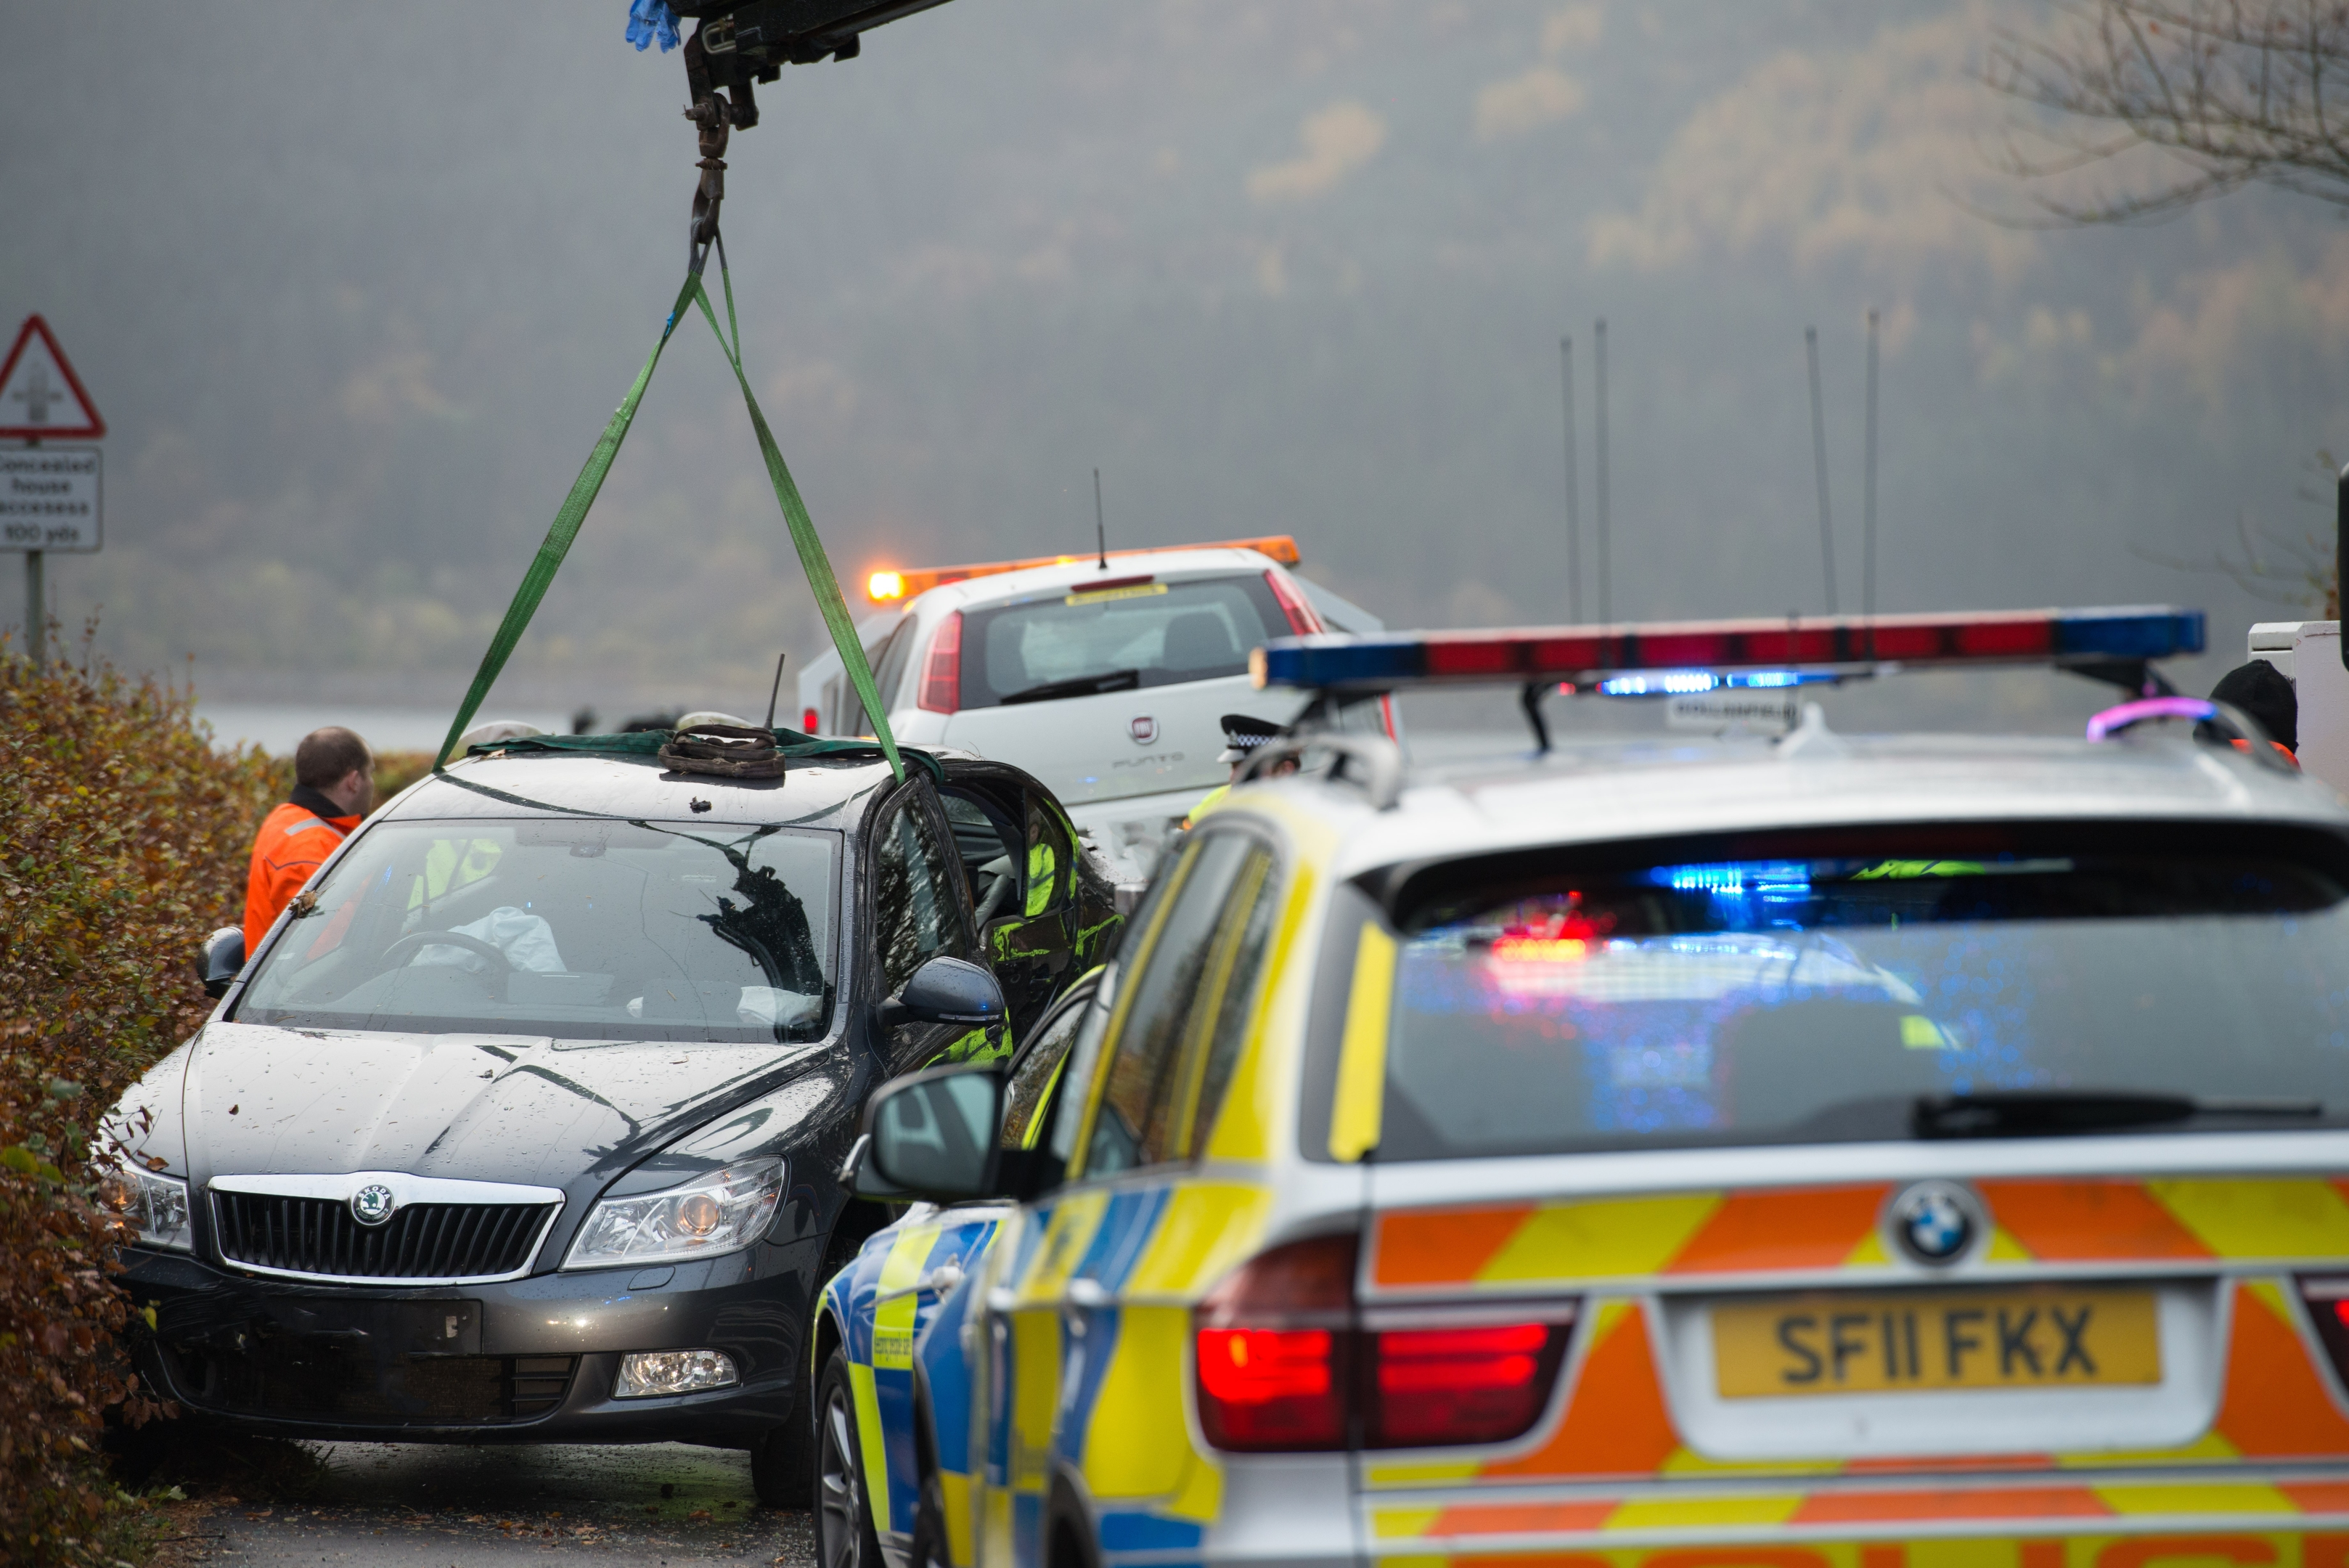 The road was closed while the cars were recovered